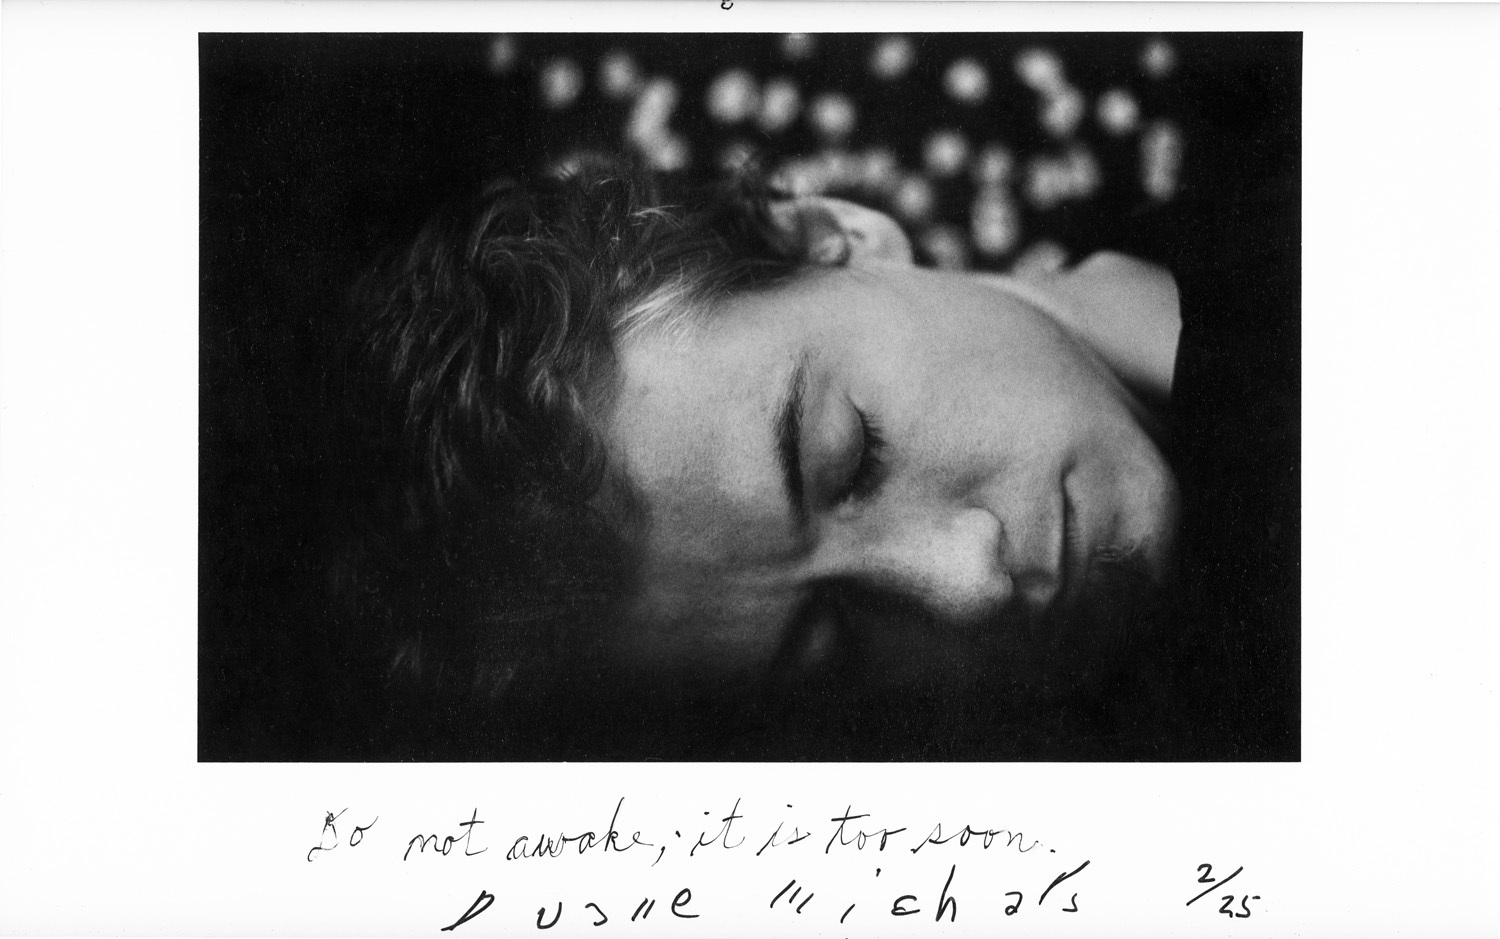 08 Duane Michals 2 Of 25